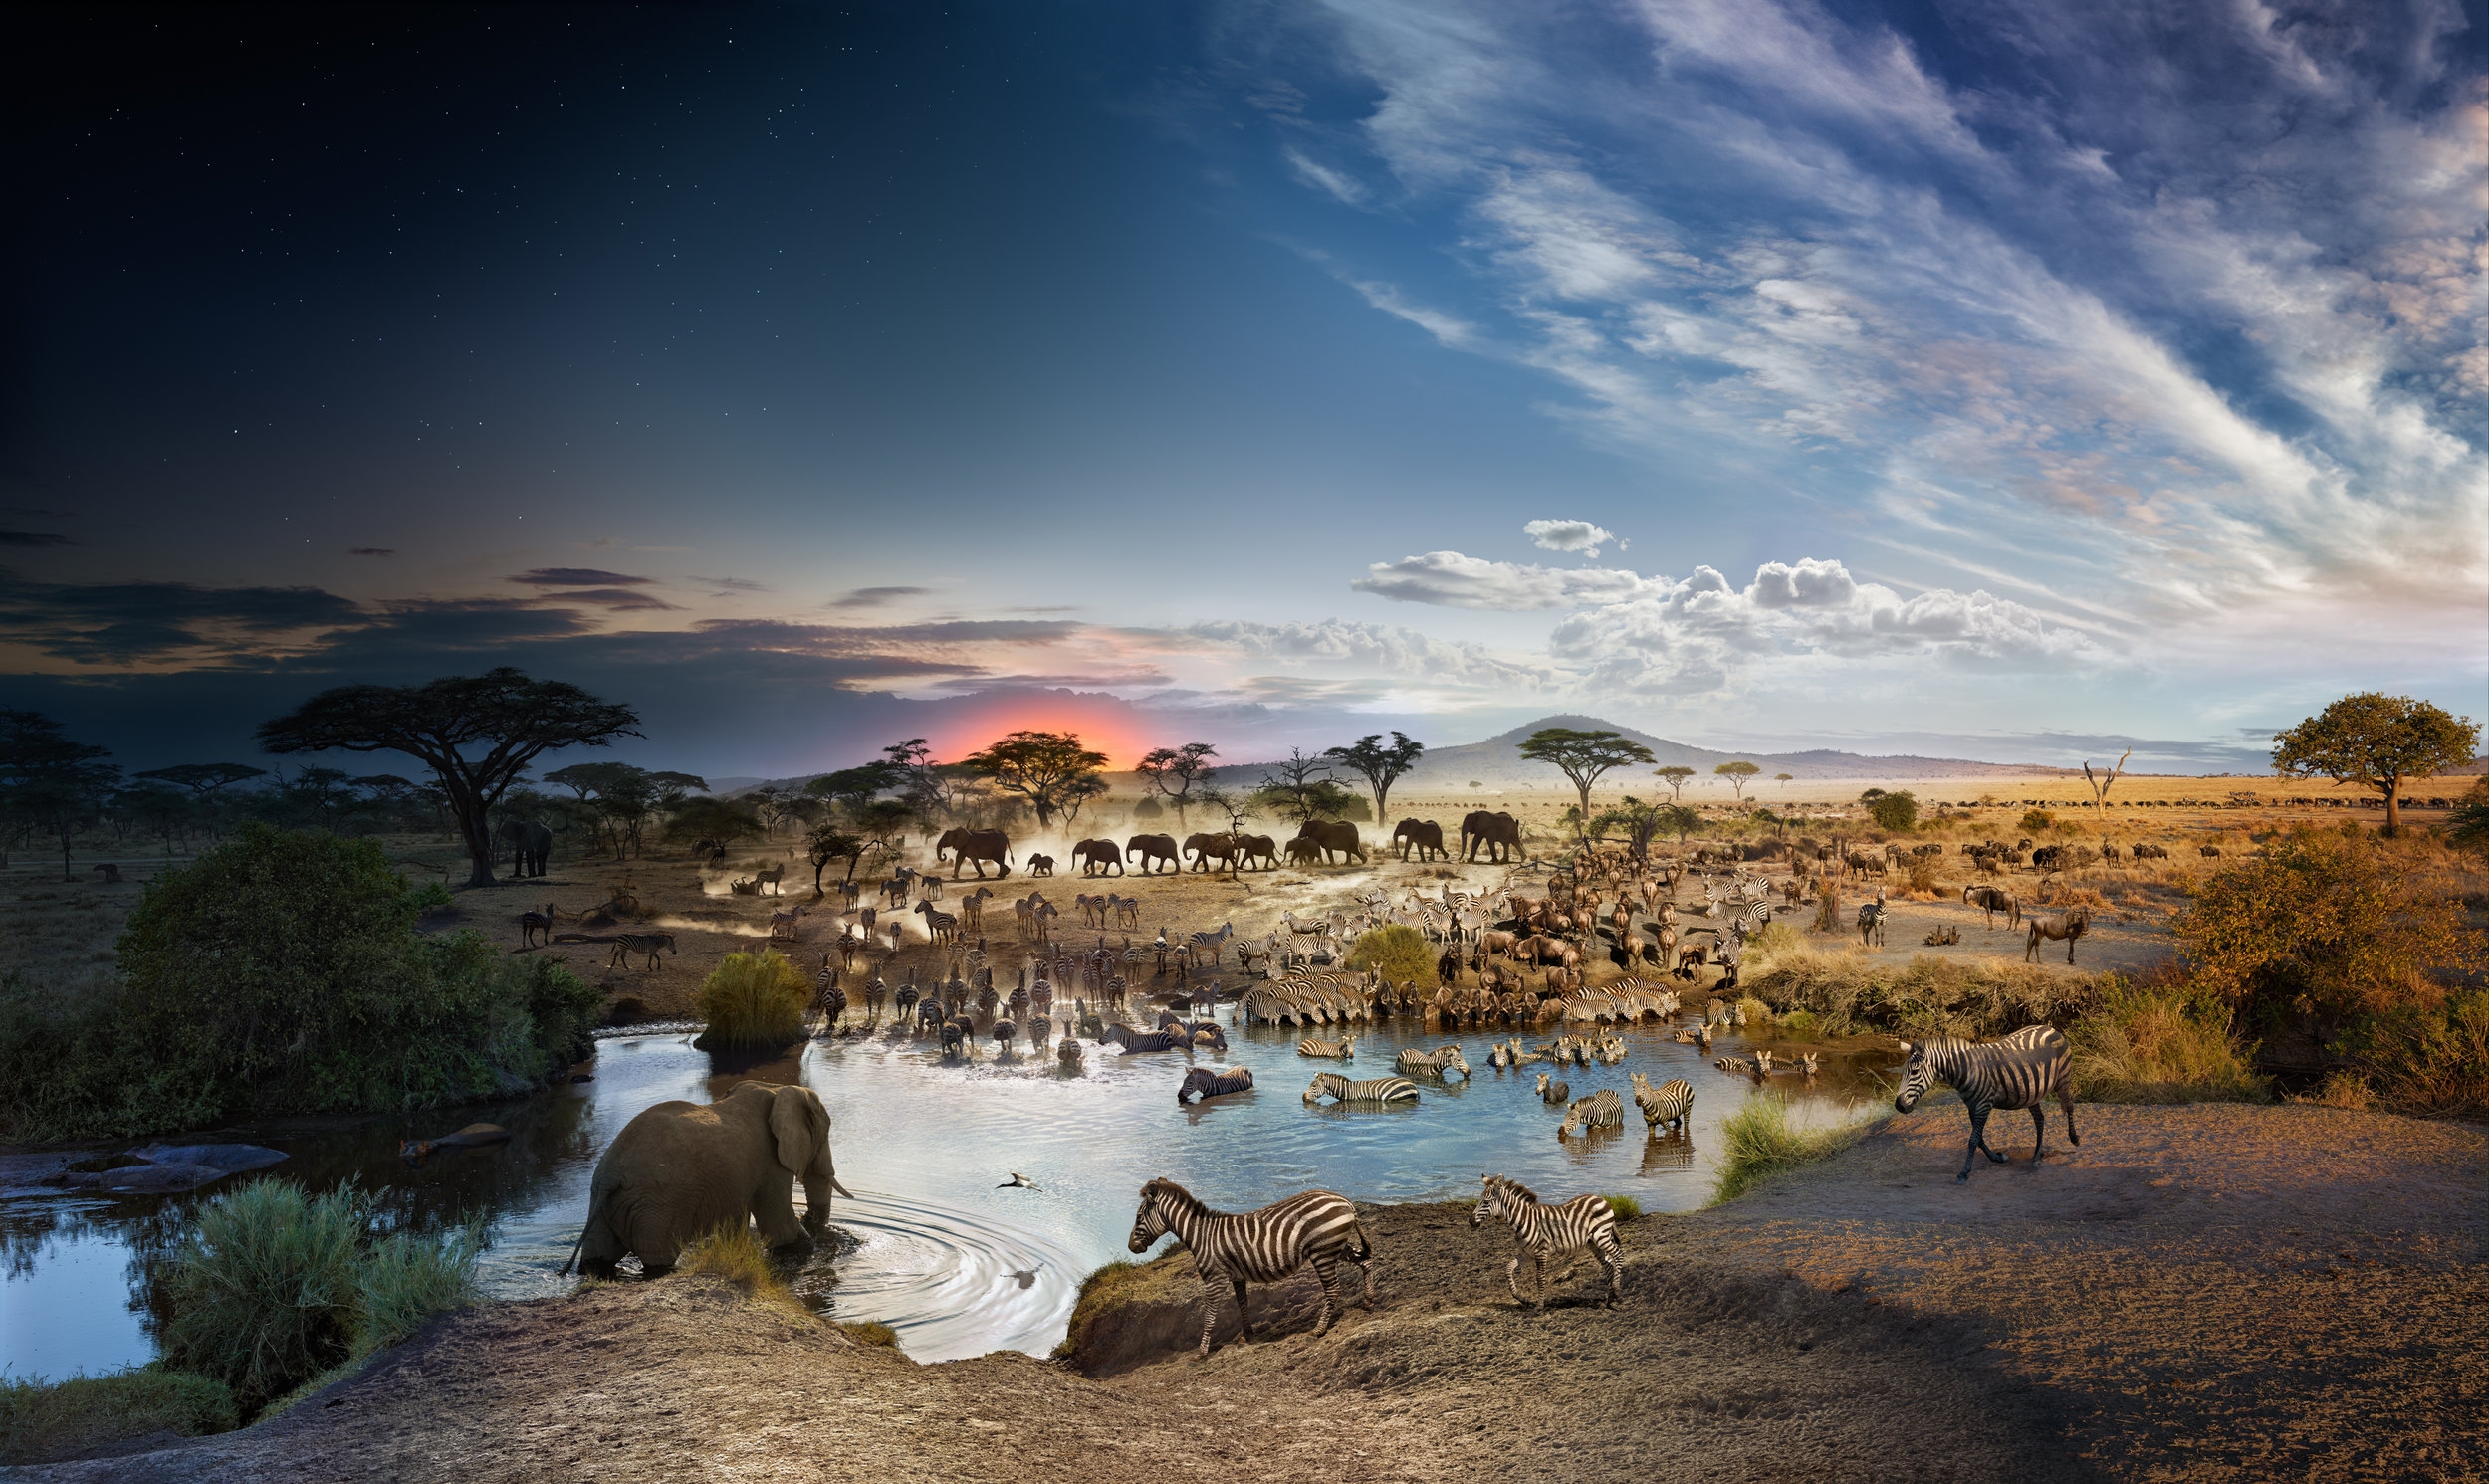 Serengeti National Park, Tanzania, Day to Night™, 2015